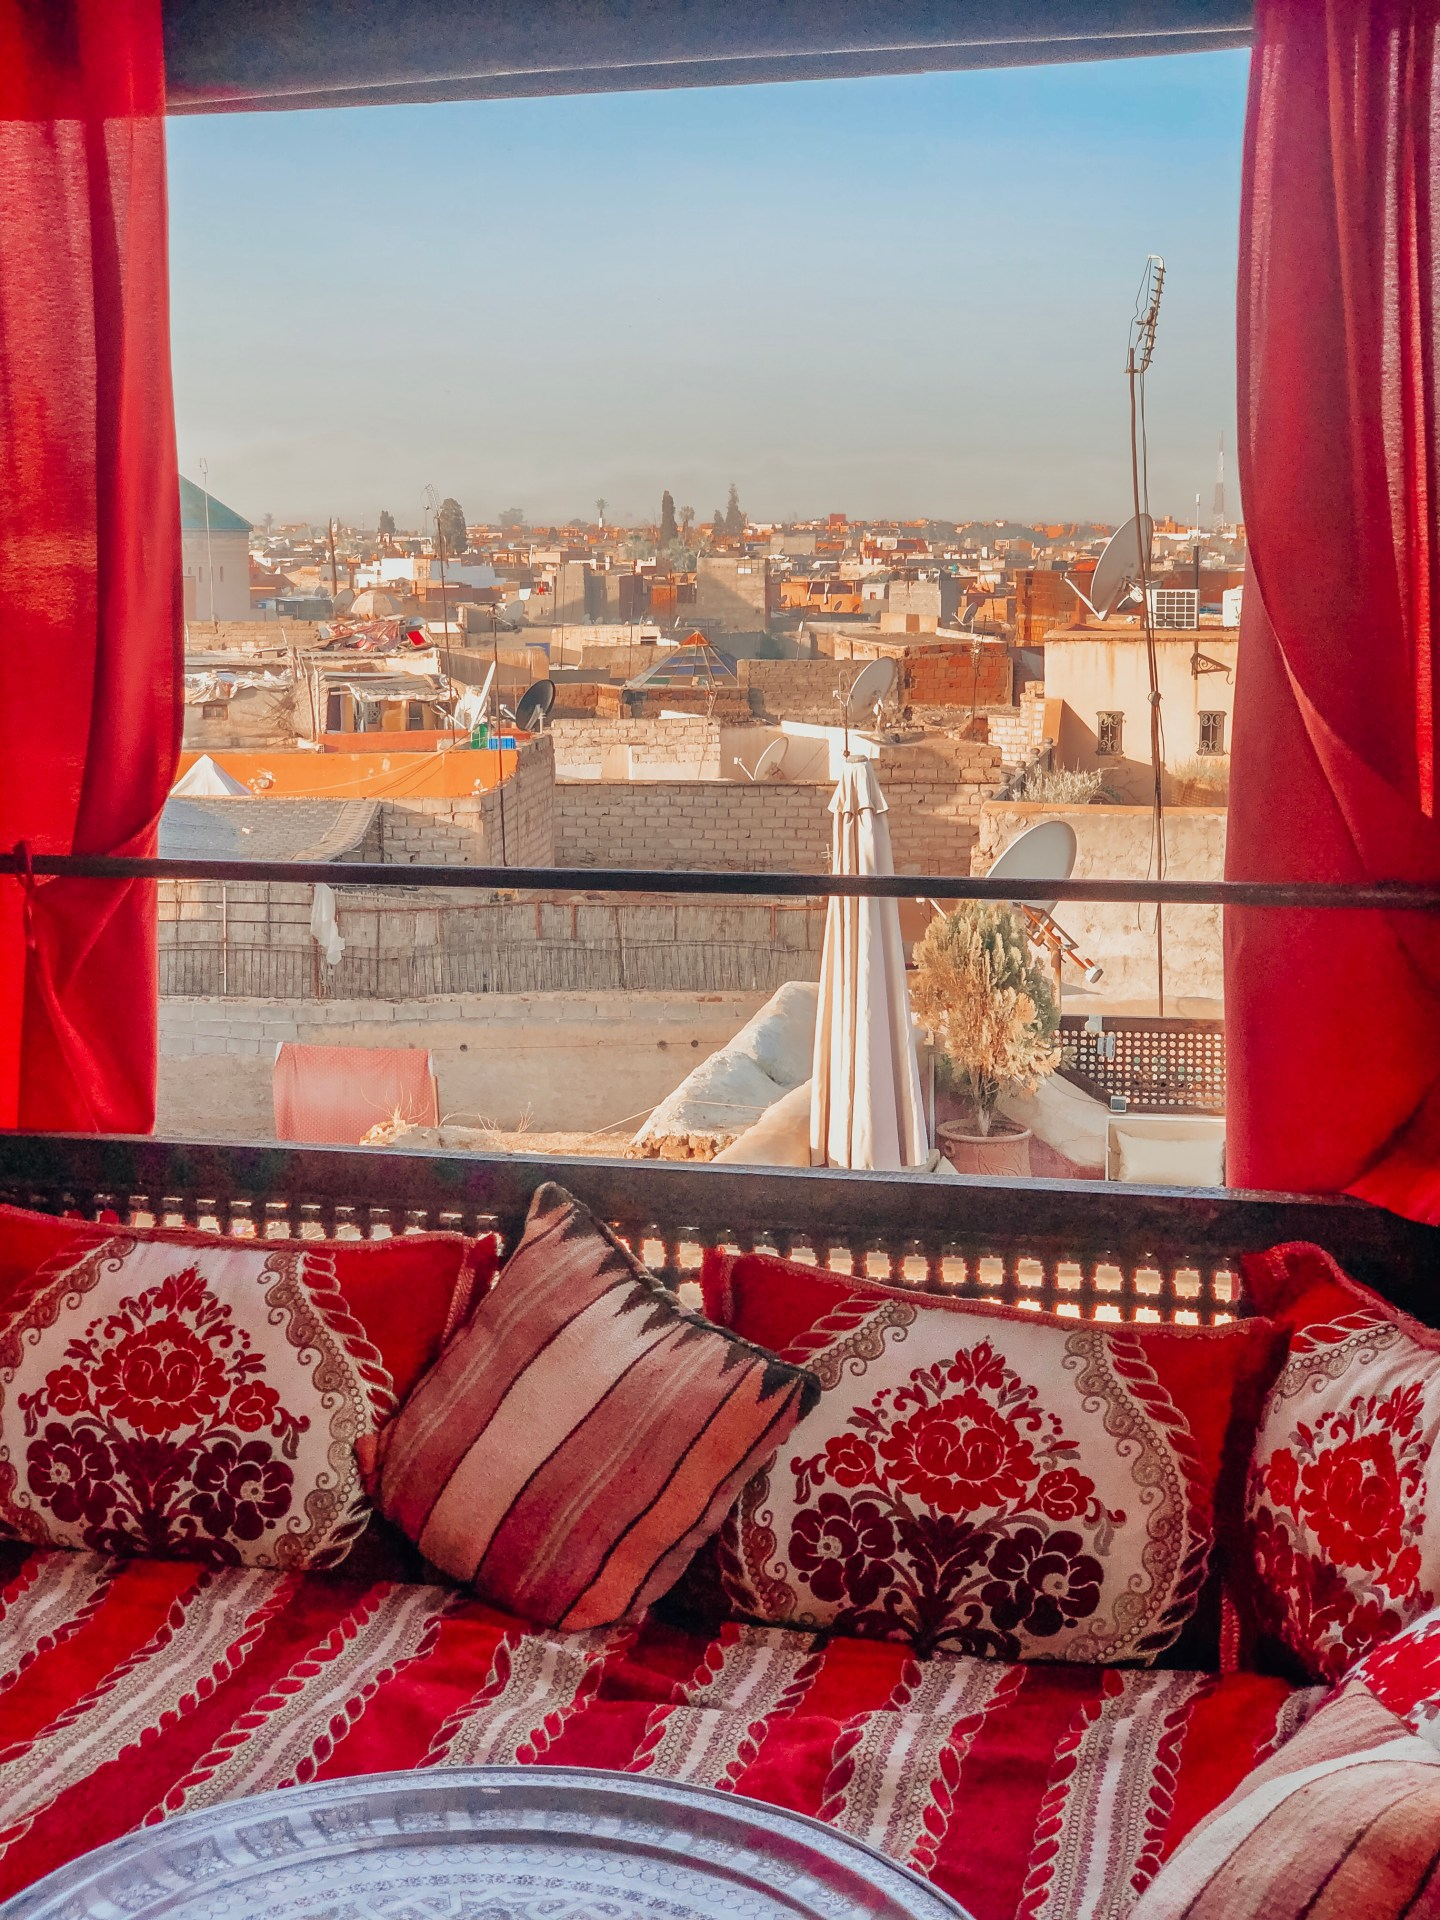 Riad Anayela's rooftop view—Marrakech, Morocco